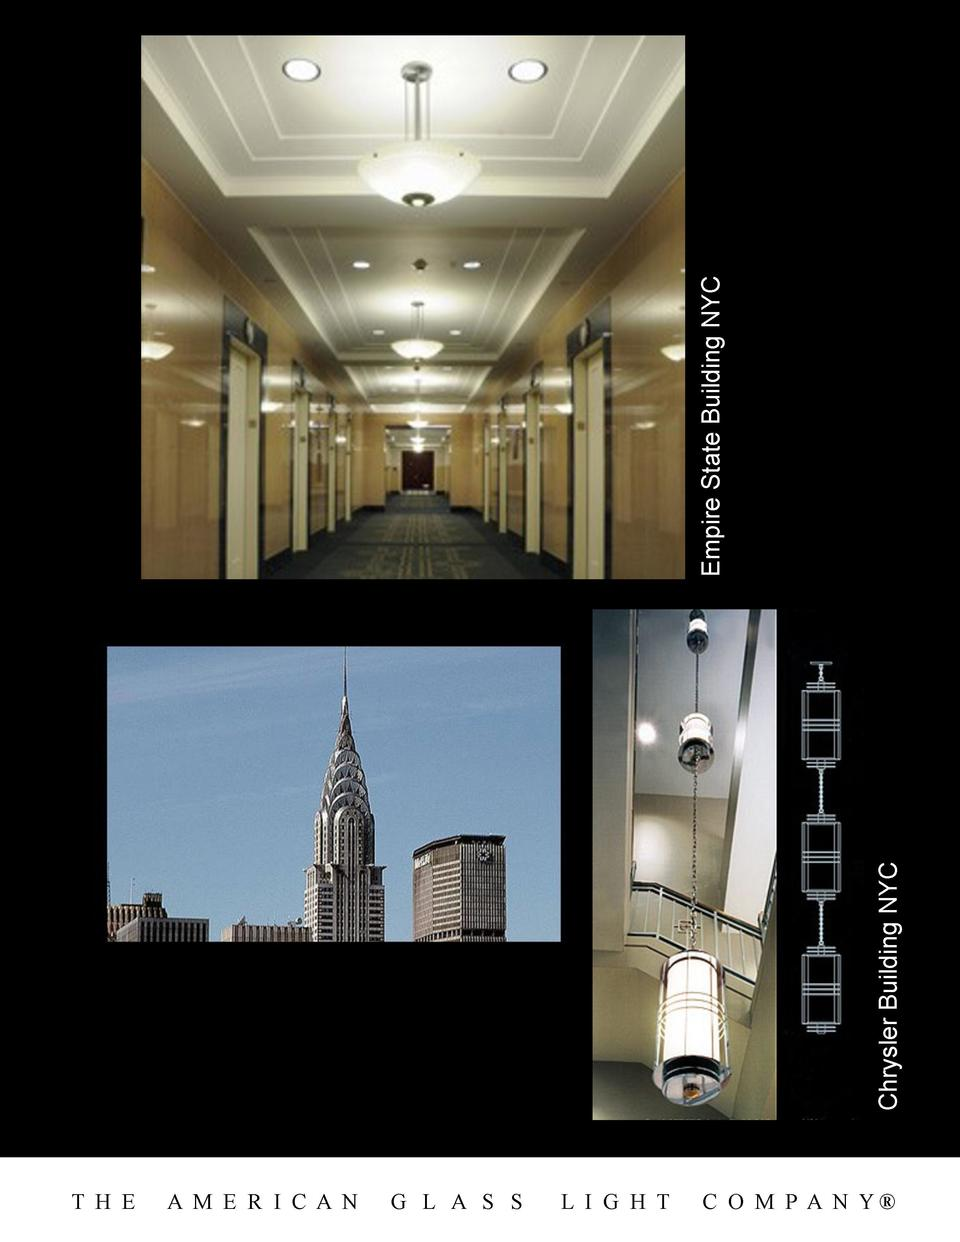 Chrysler Building NYC  Empire State Building NYC T H E  A M E R I C A N  G L A S S  L I G H T  C O M P A N Y